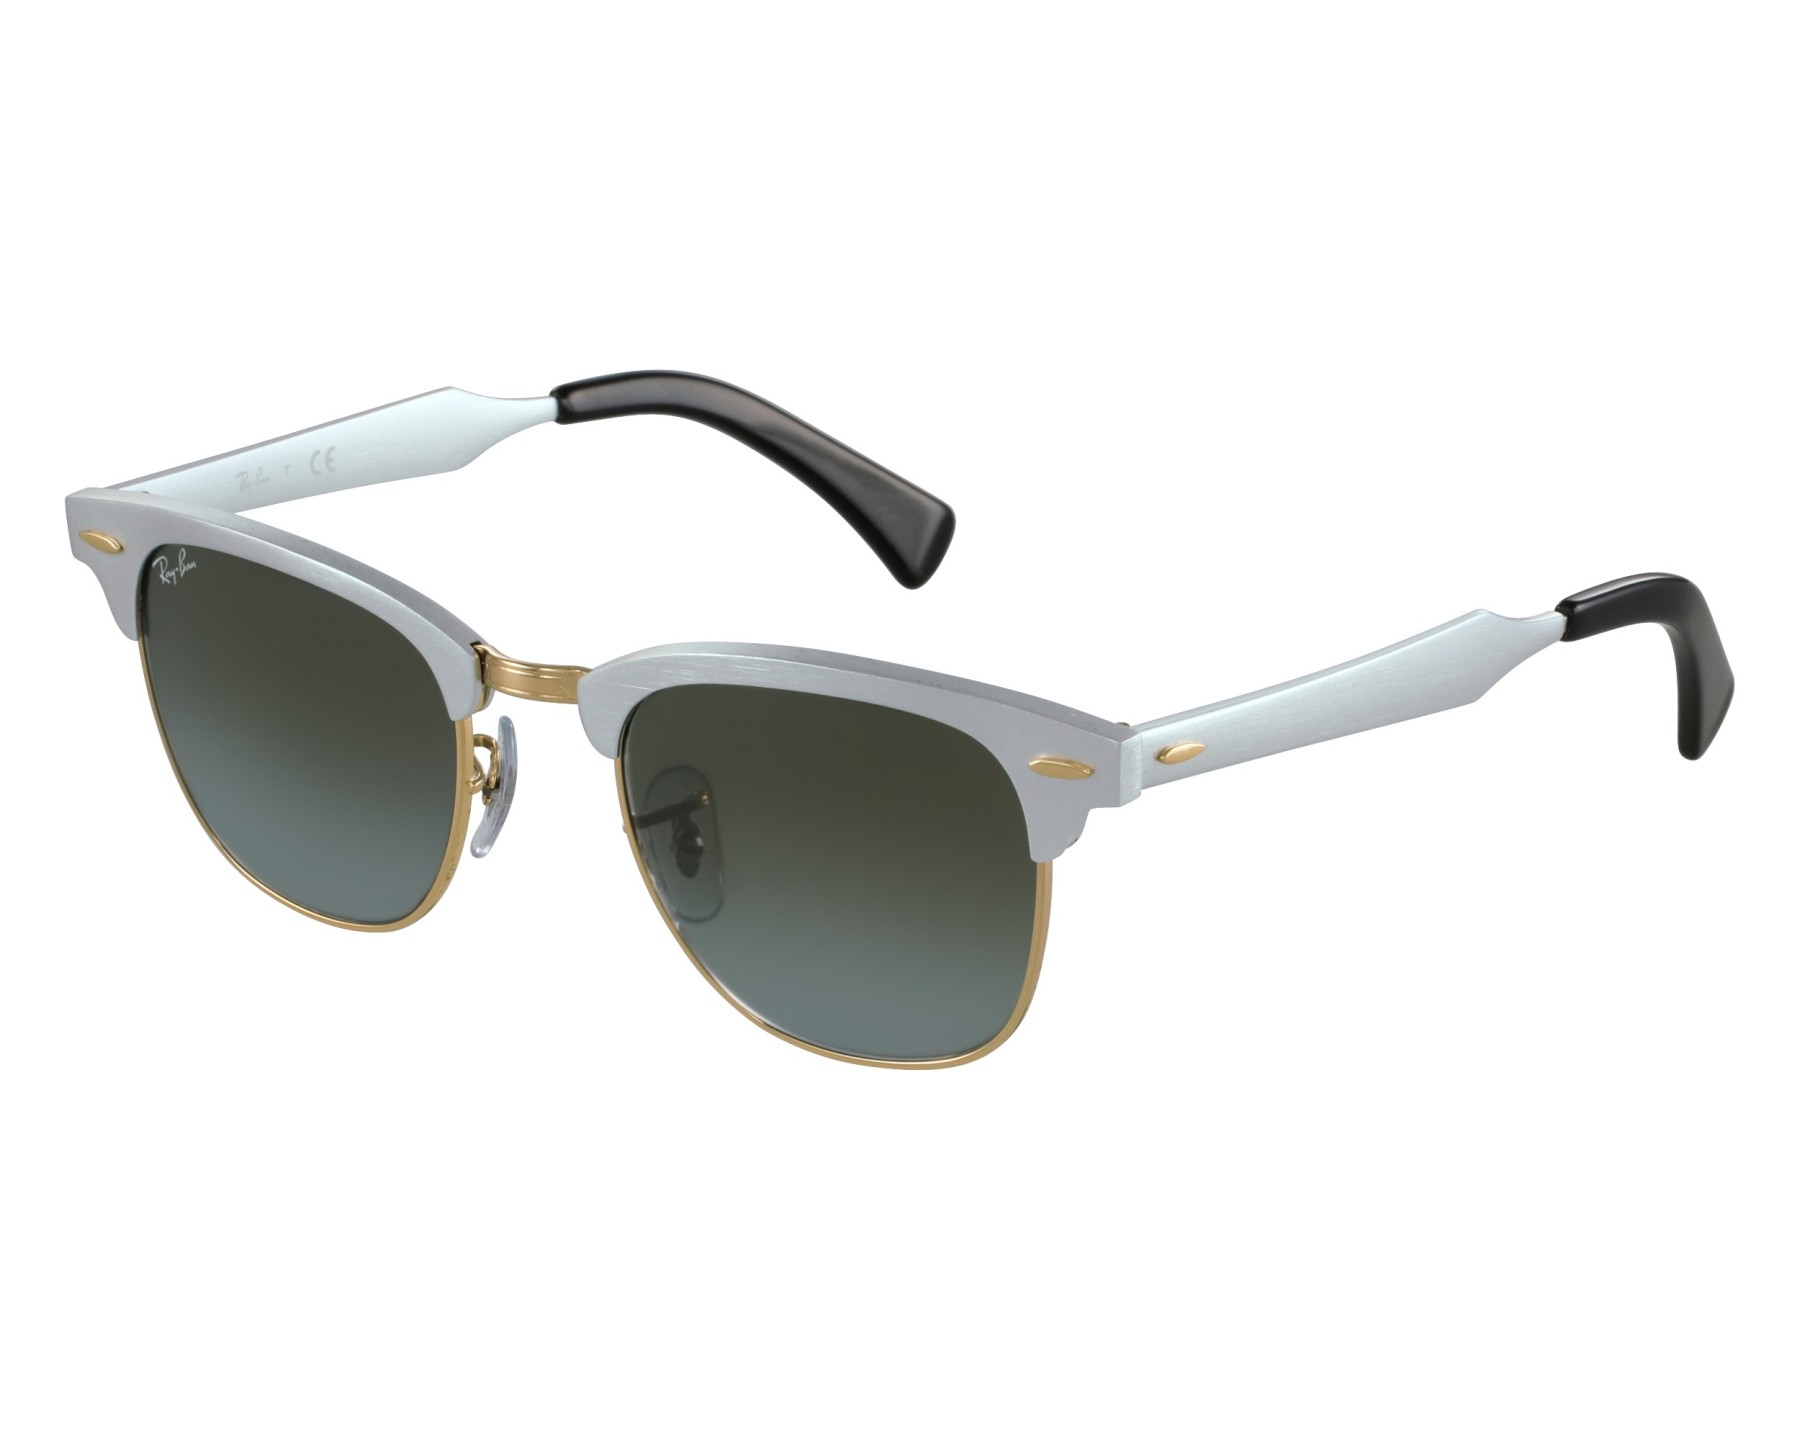 d7c8af35f9d ... authentic sunglasses ray ban rb 3507 137 9j 49 21 silver gold front  6b4e5 82cd6